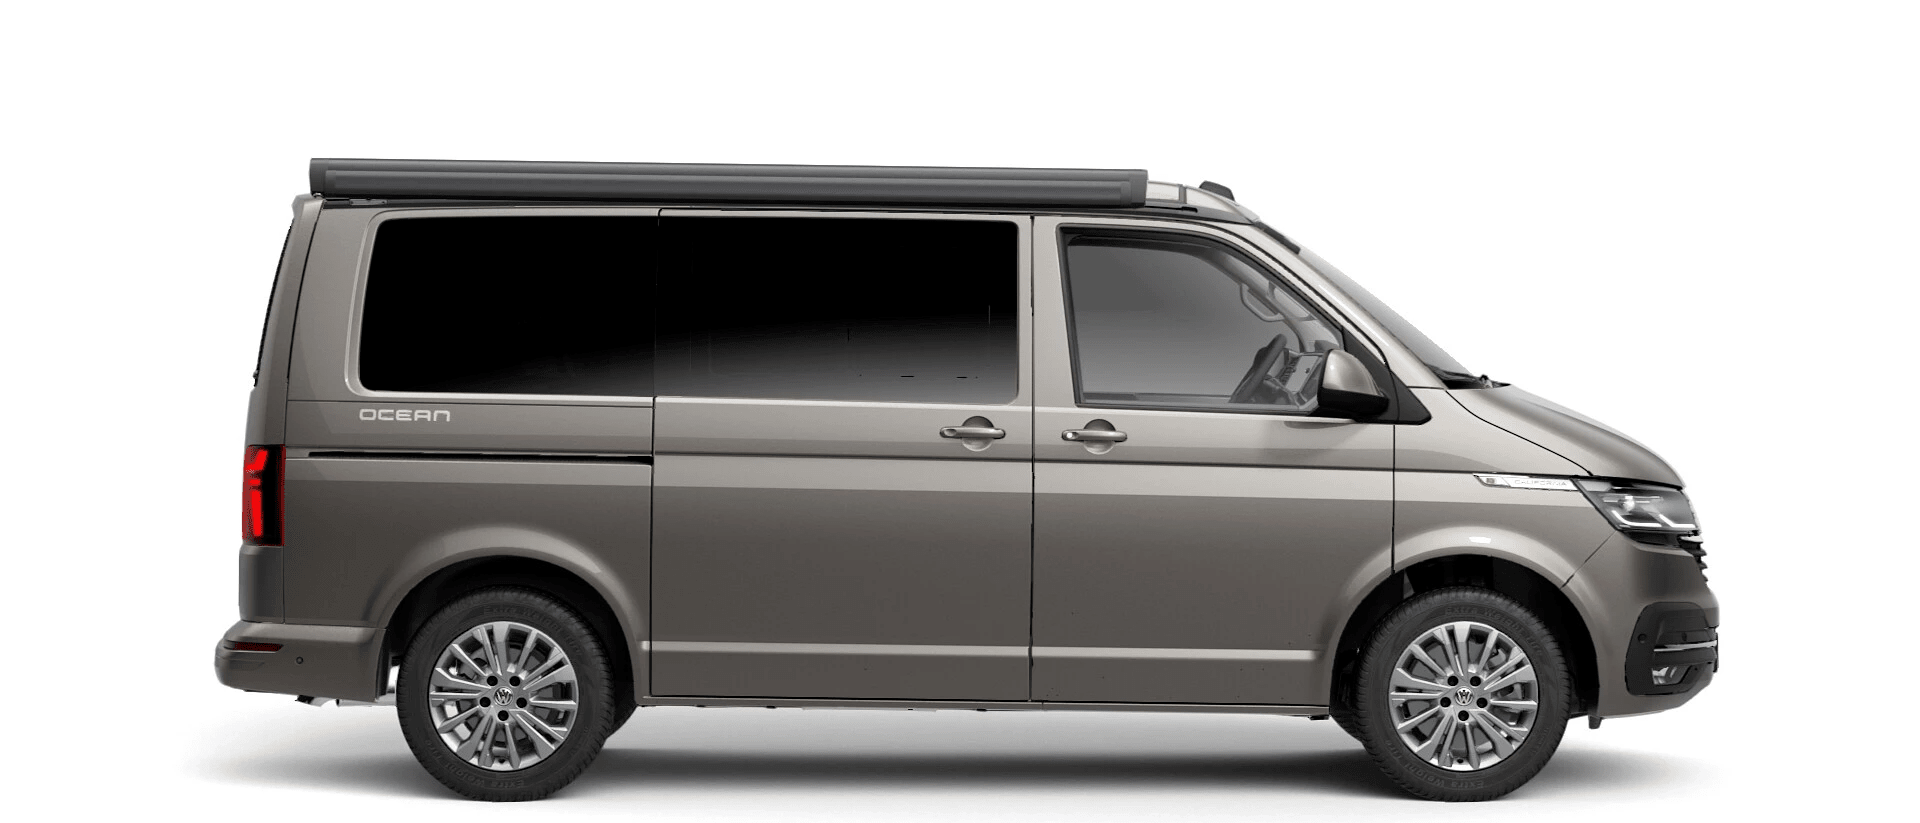 Volkswagen Van Range California - Available In Metallic Mojave Beige